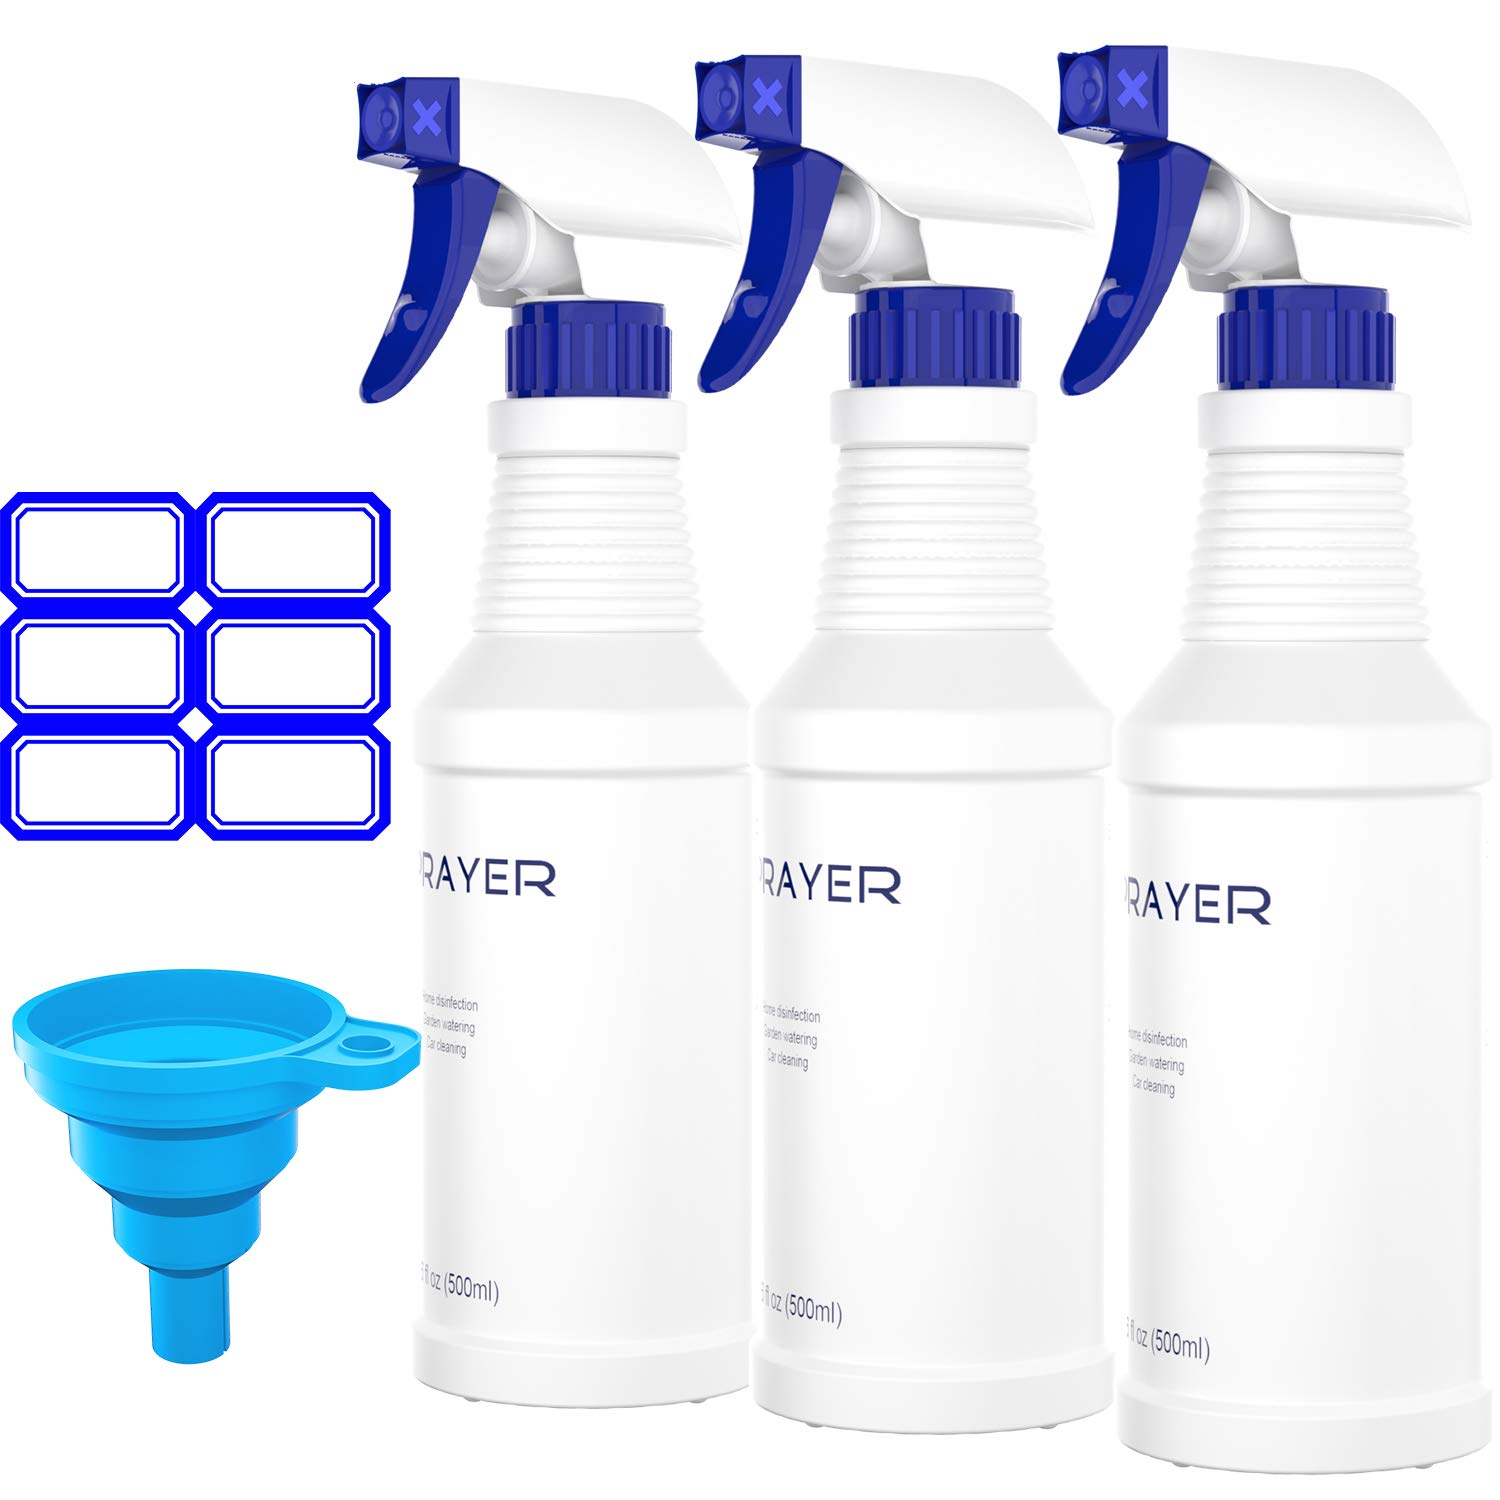 Spray Bottles for Commercial Cleaning Solutions(3 Pack,16 Oz), Professional Heavy Duty Plastic Empty Spray Bottle with Adjustable Nozzle and Measurement for Household, Garden, Car Cleaning